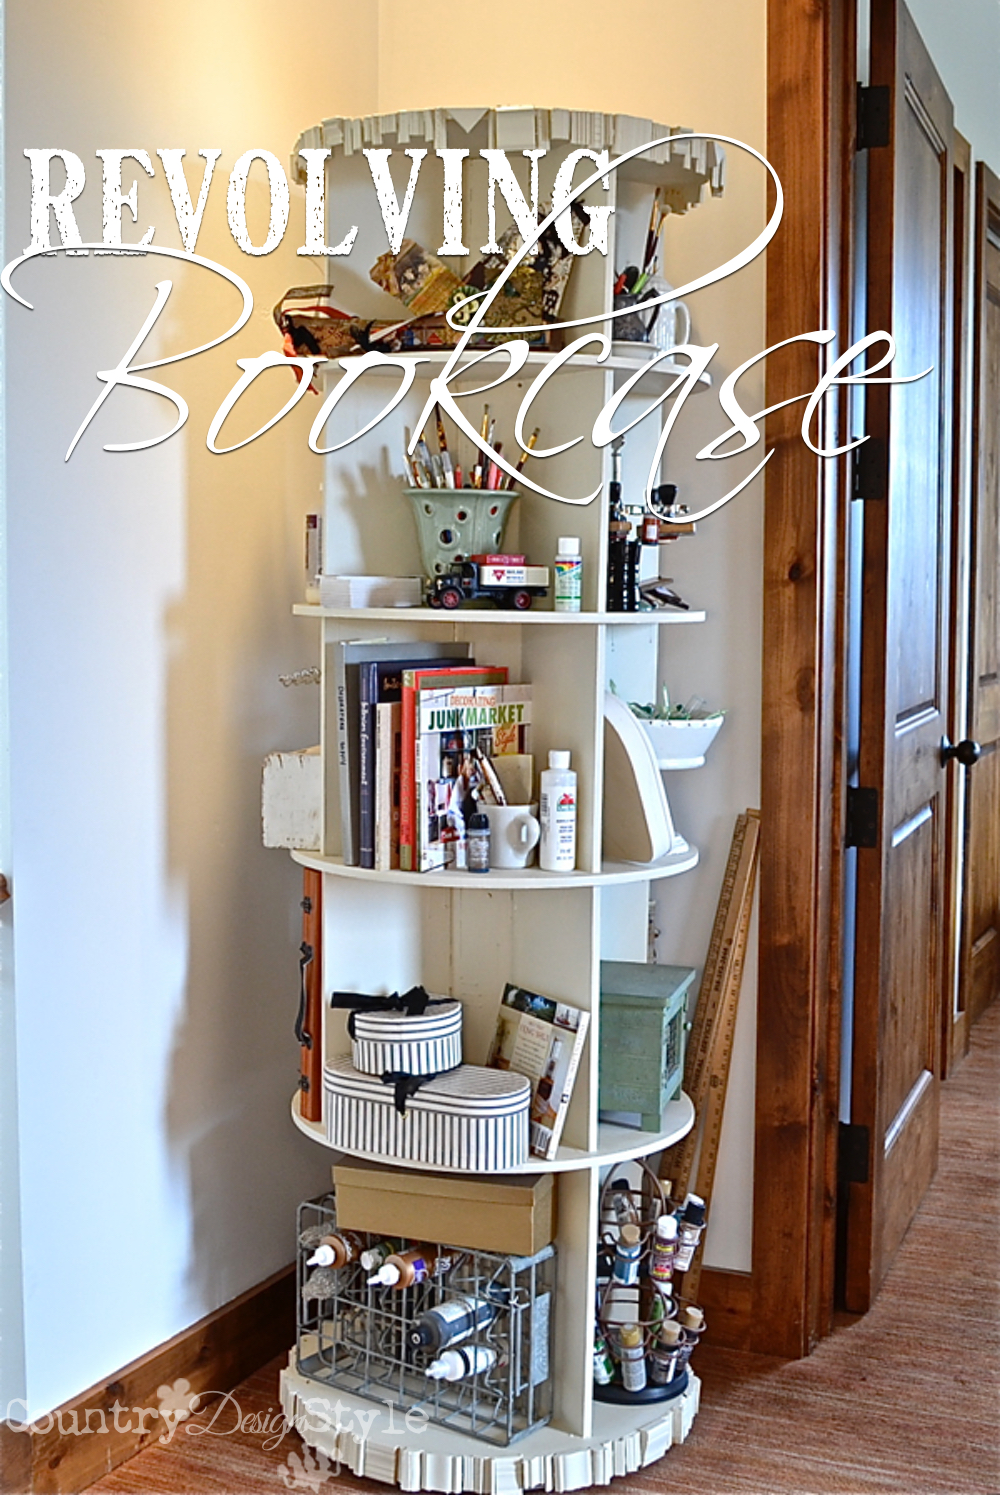 Revolving Bookcase Country Design Style Pn